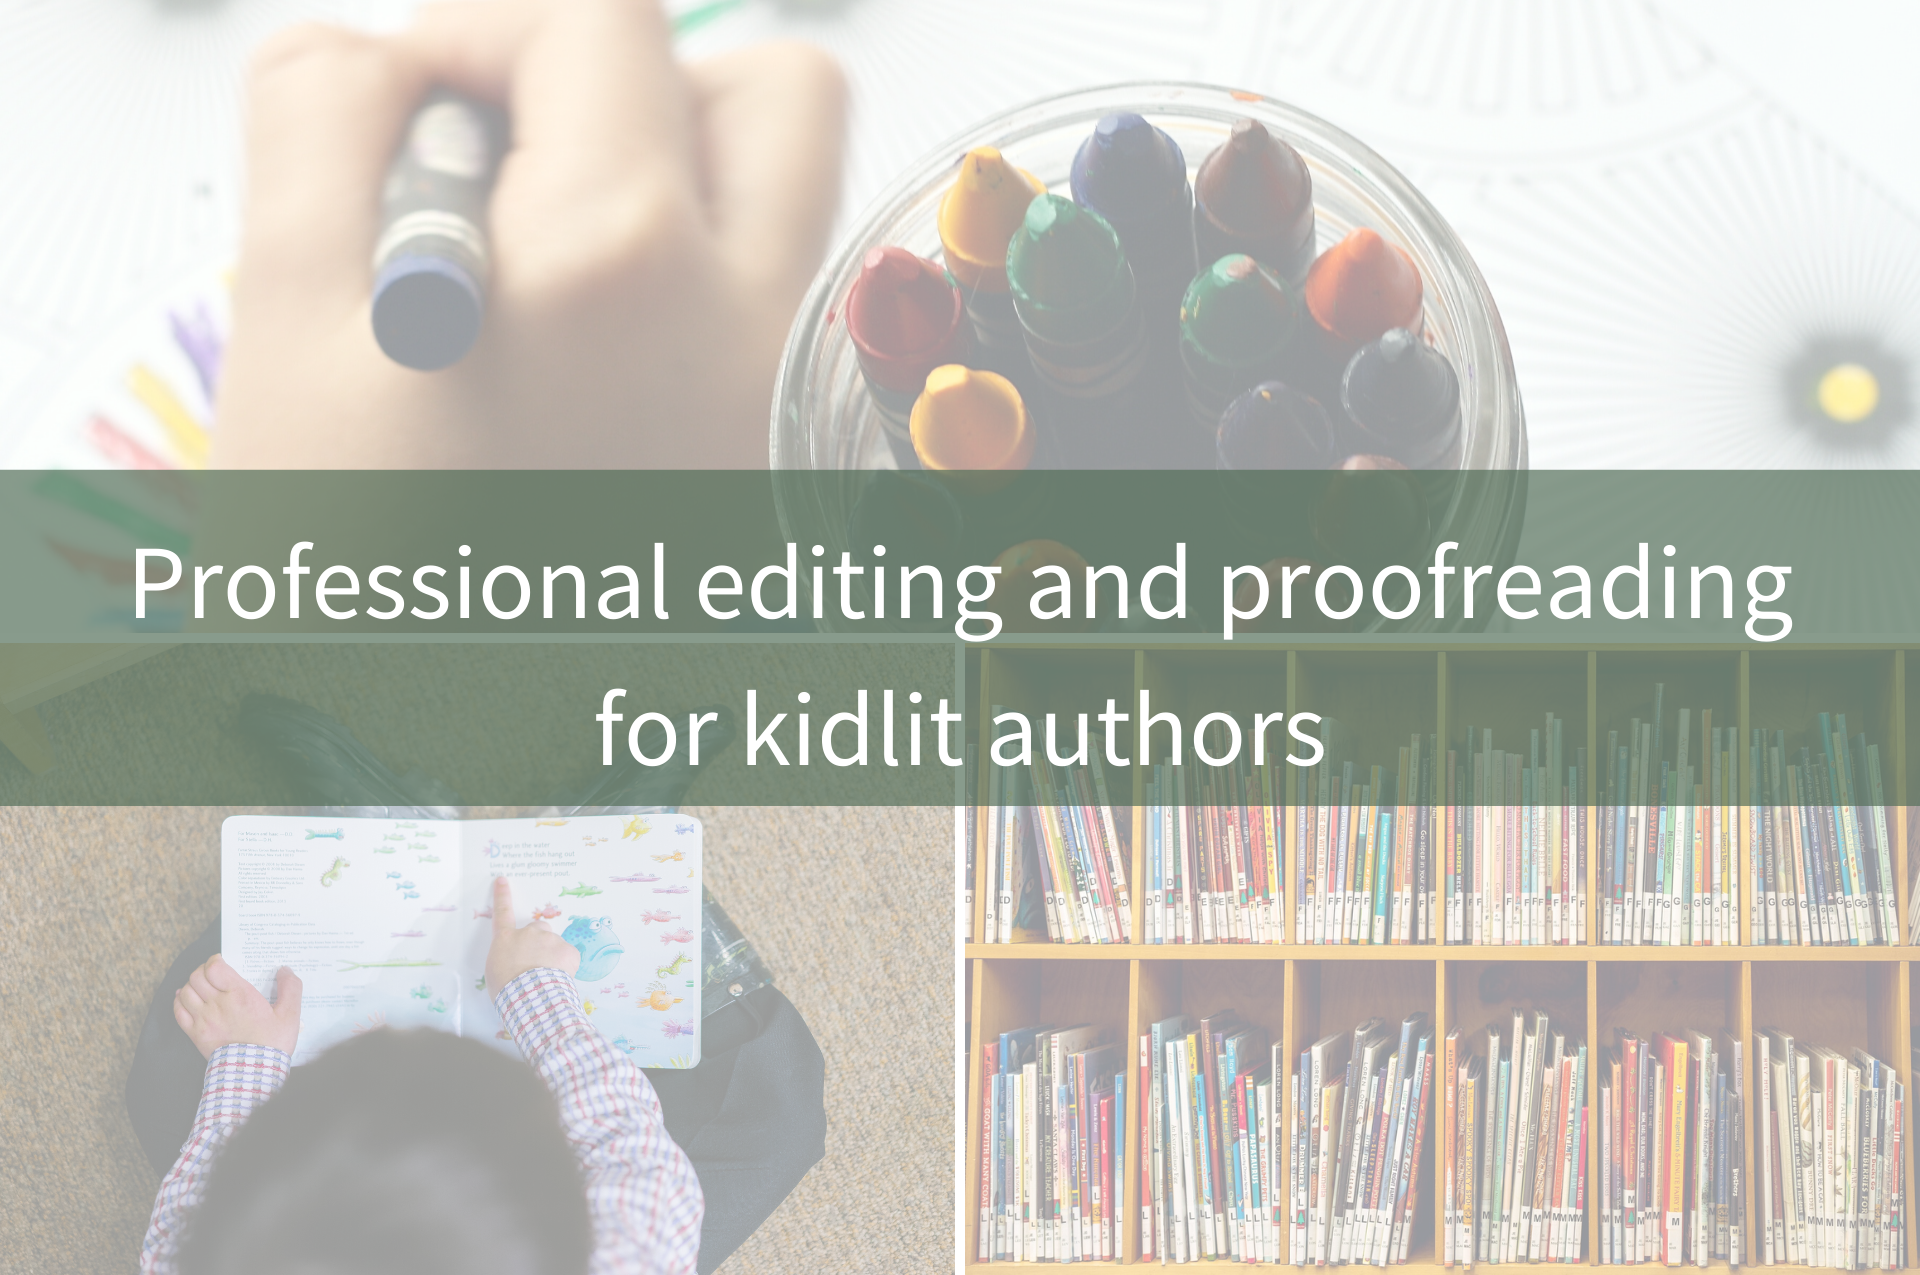 Professional editing and proofreading for kidlit authors